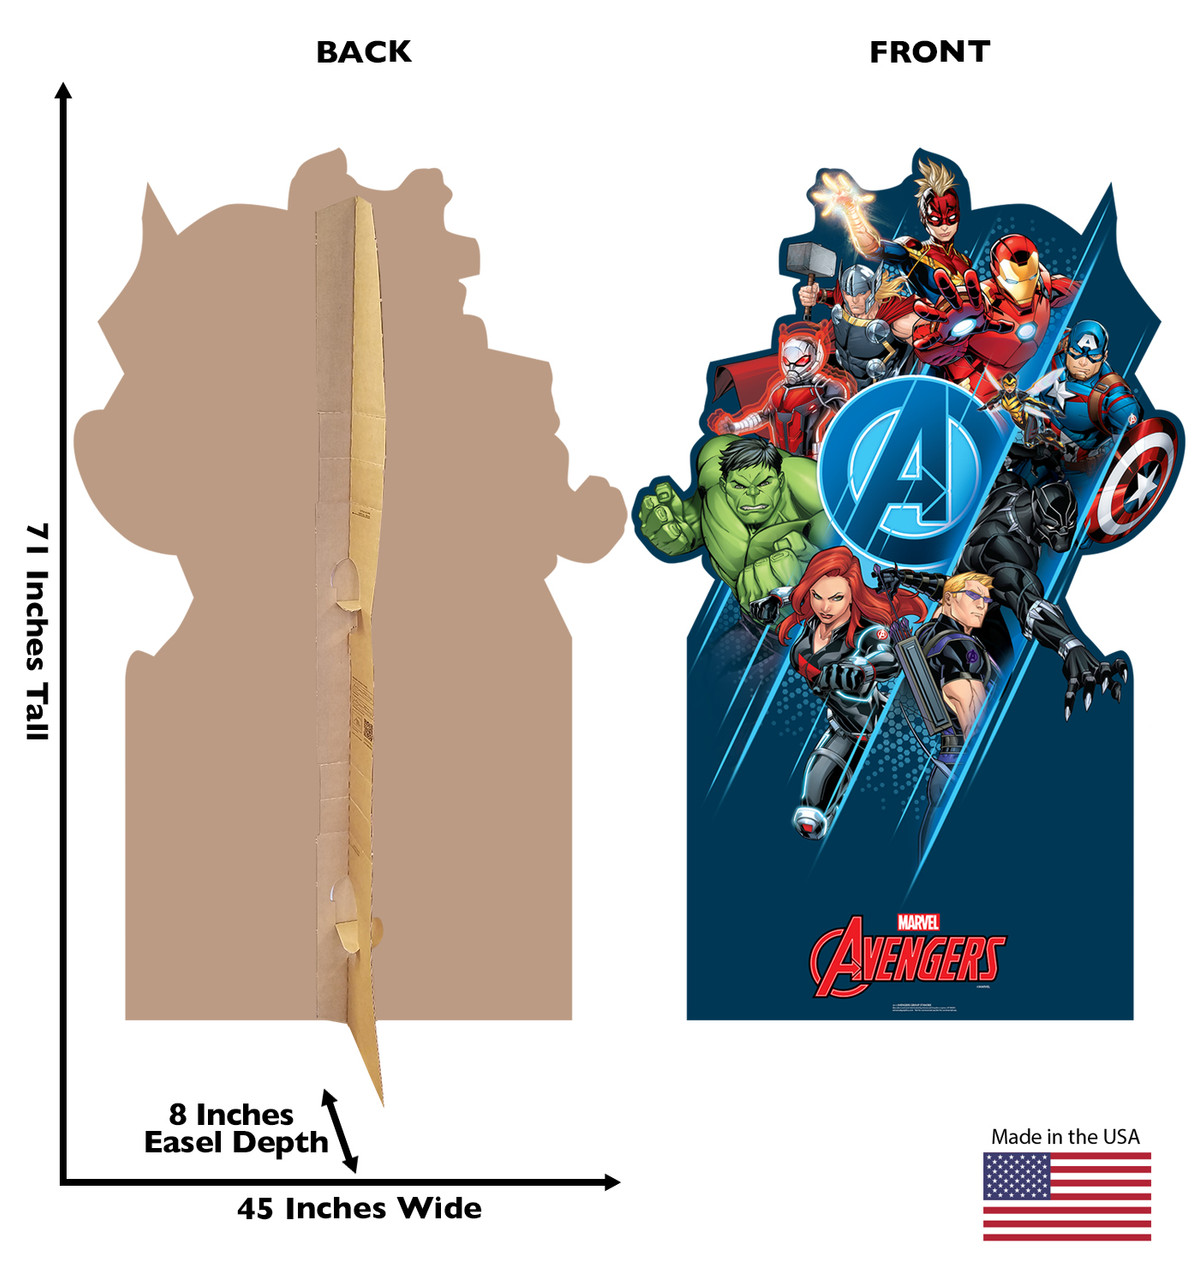 Life-size cardboard standee of the Avengers Classic Group with back and front dimensions.